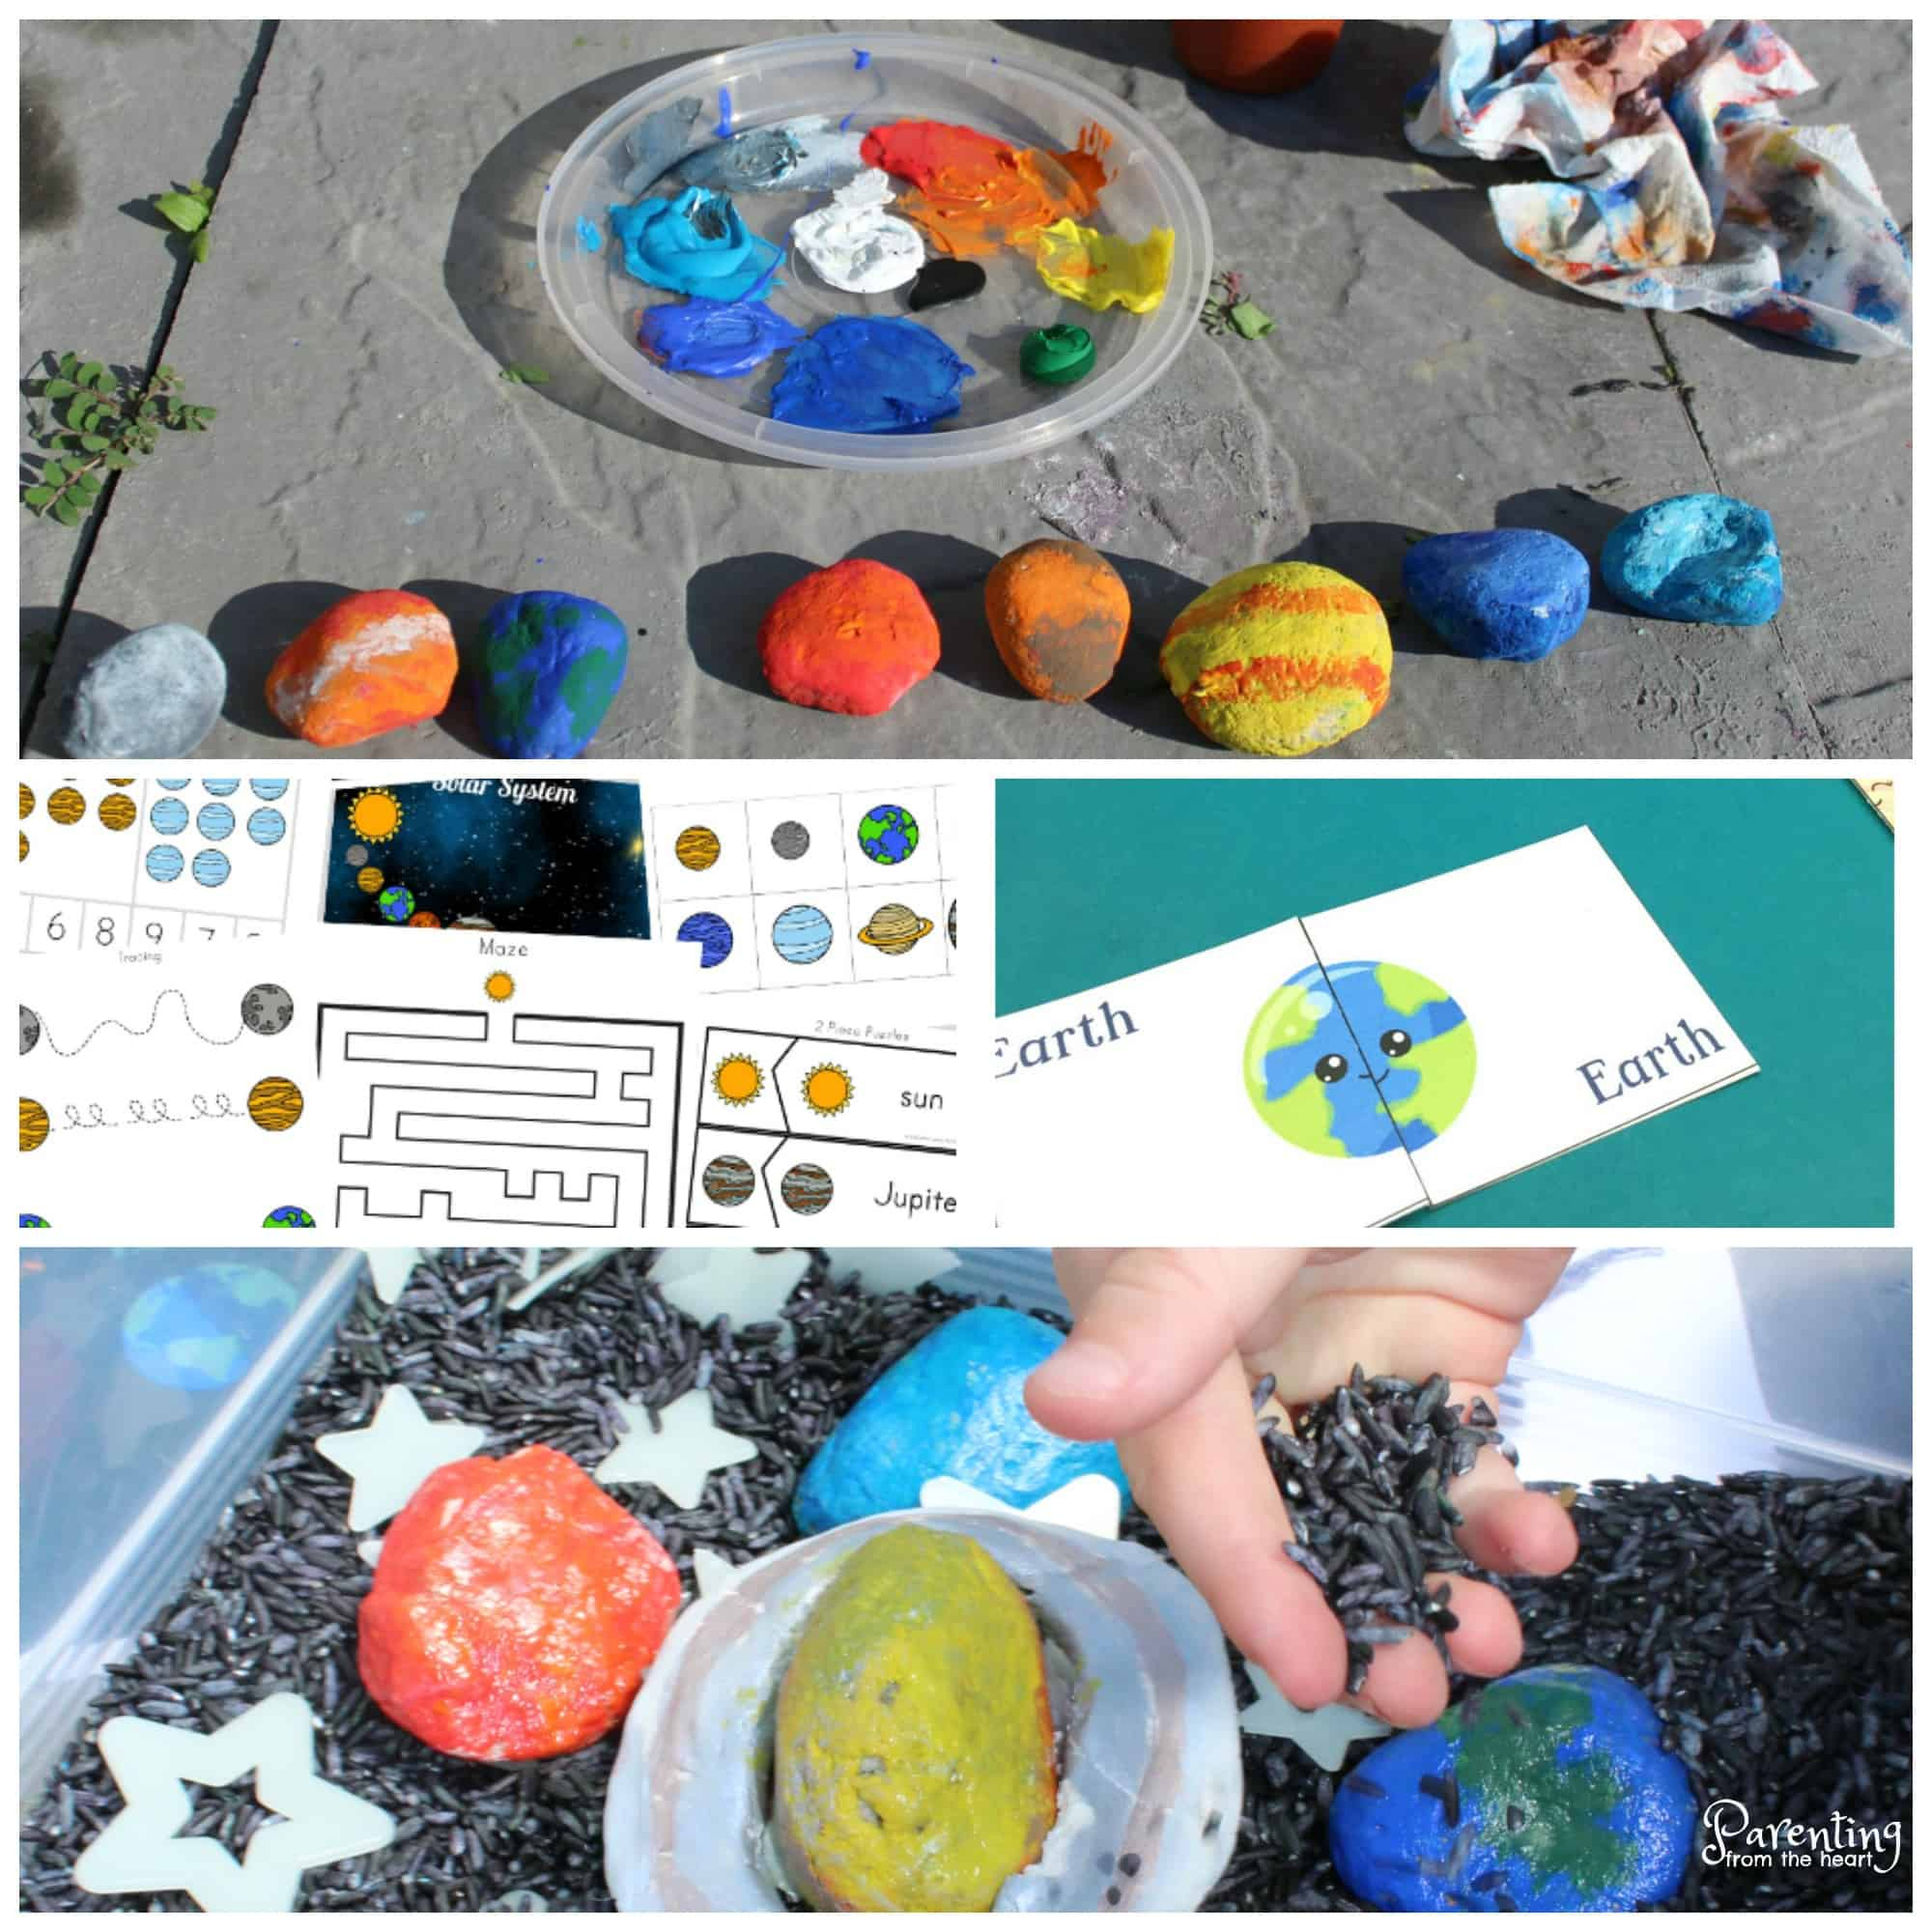 Solar System Worksheets: Free Printables For Preschoolers And Older - Free Printable Solar System Worksheets